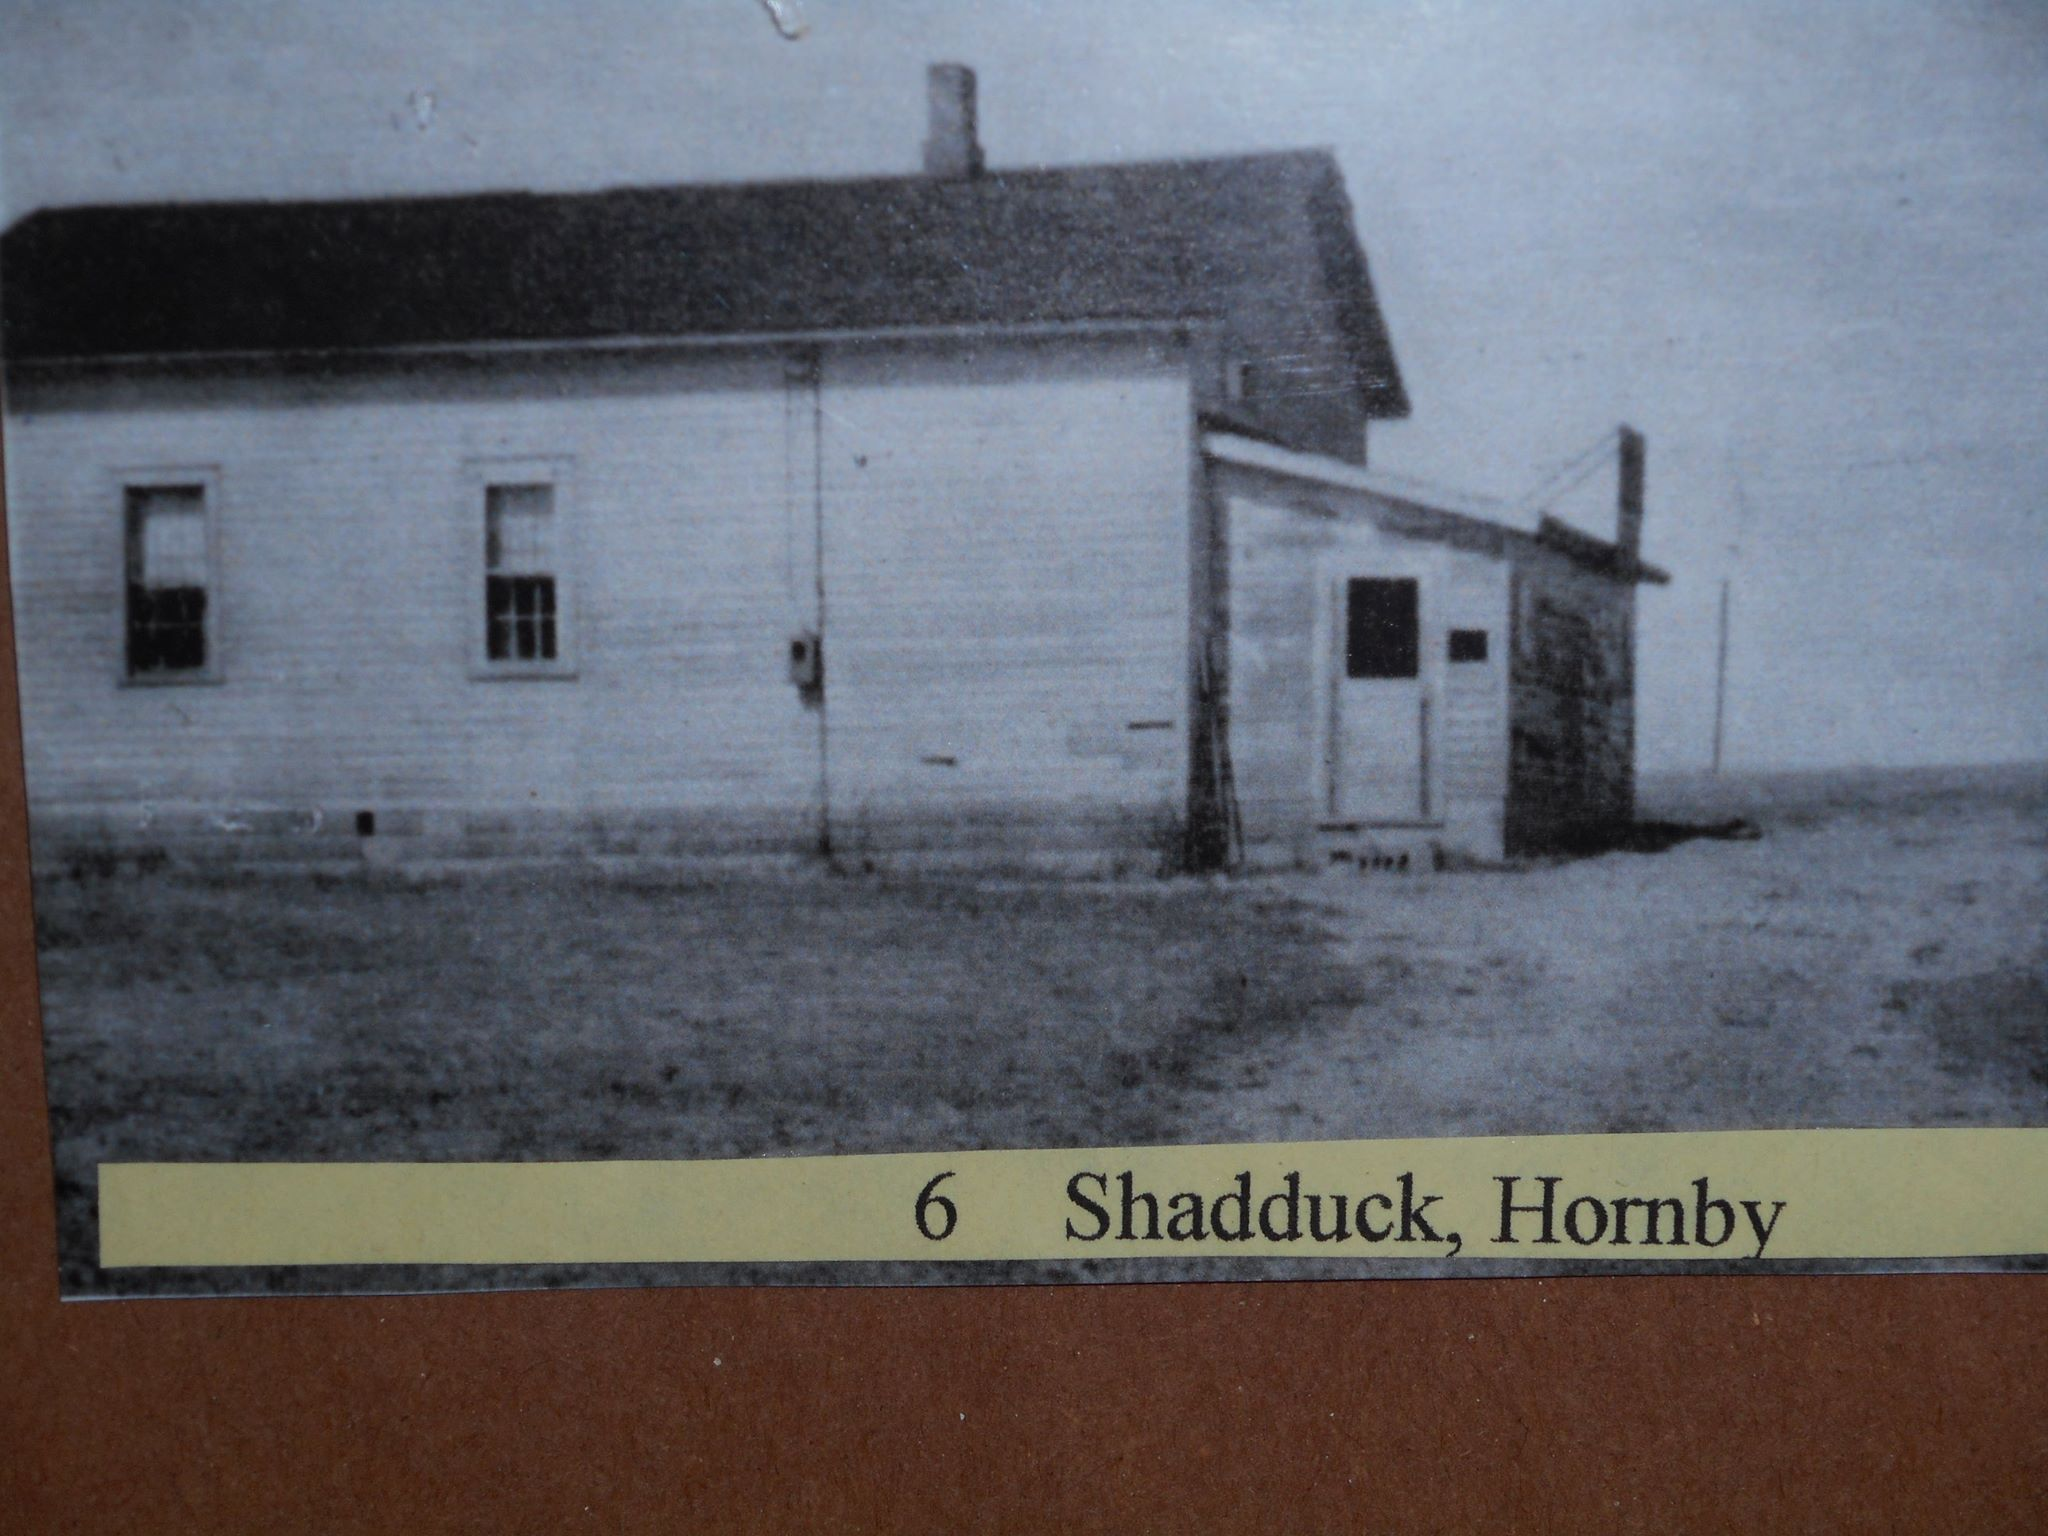 Hornby School as it looked in 1970 after 20 years of neglect and a couple years before it was restored.